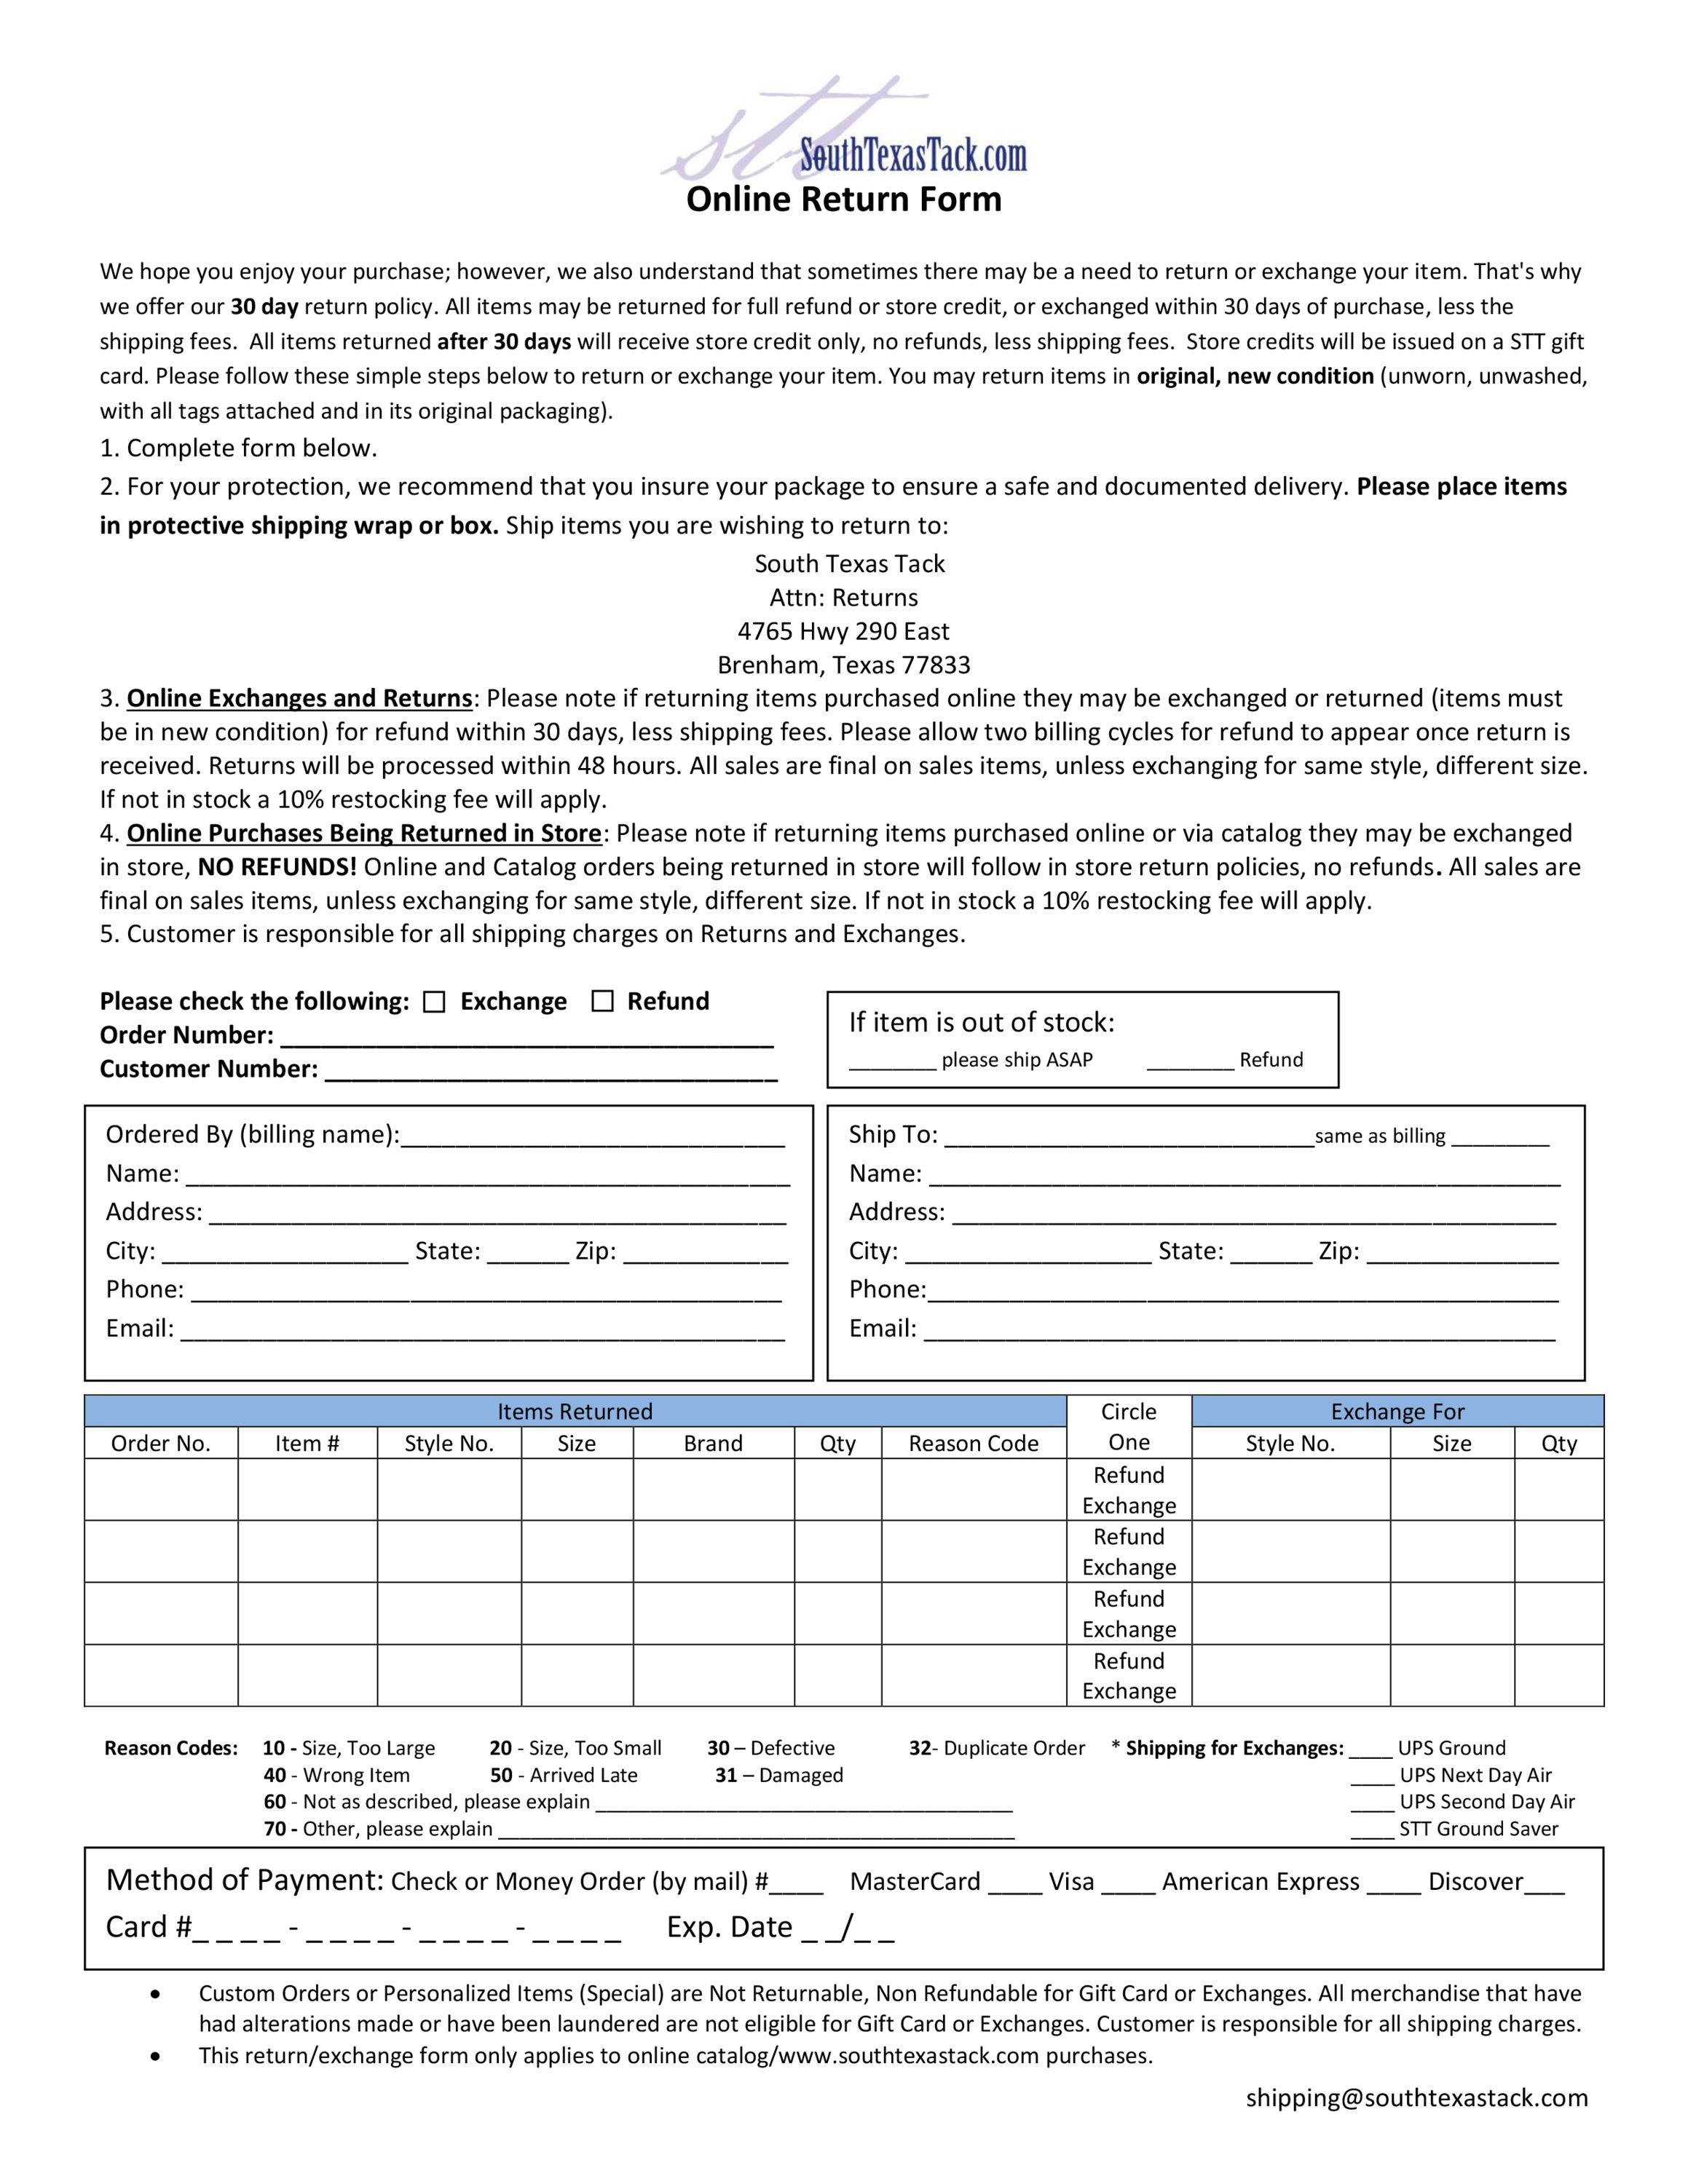 policies south texas tack please use online return form